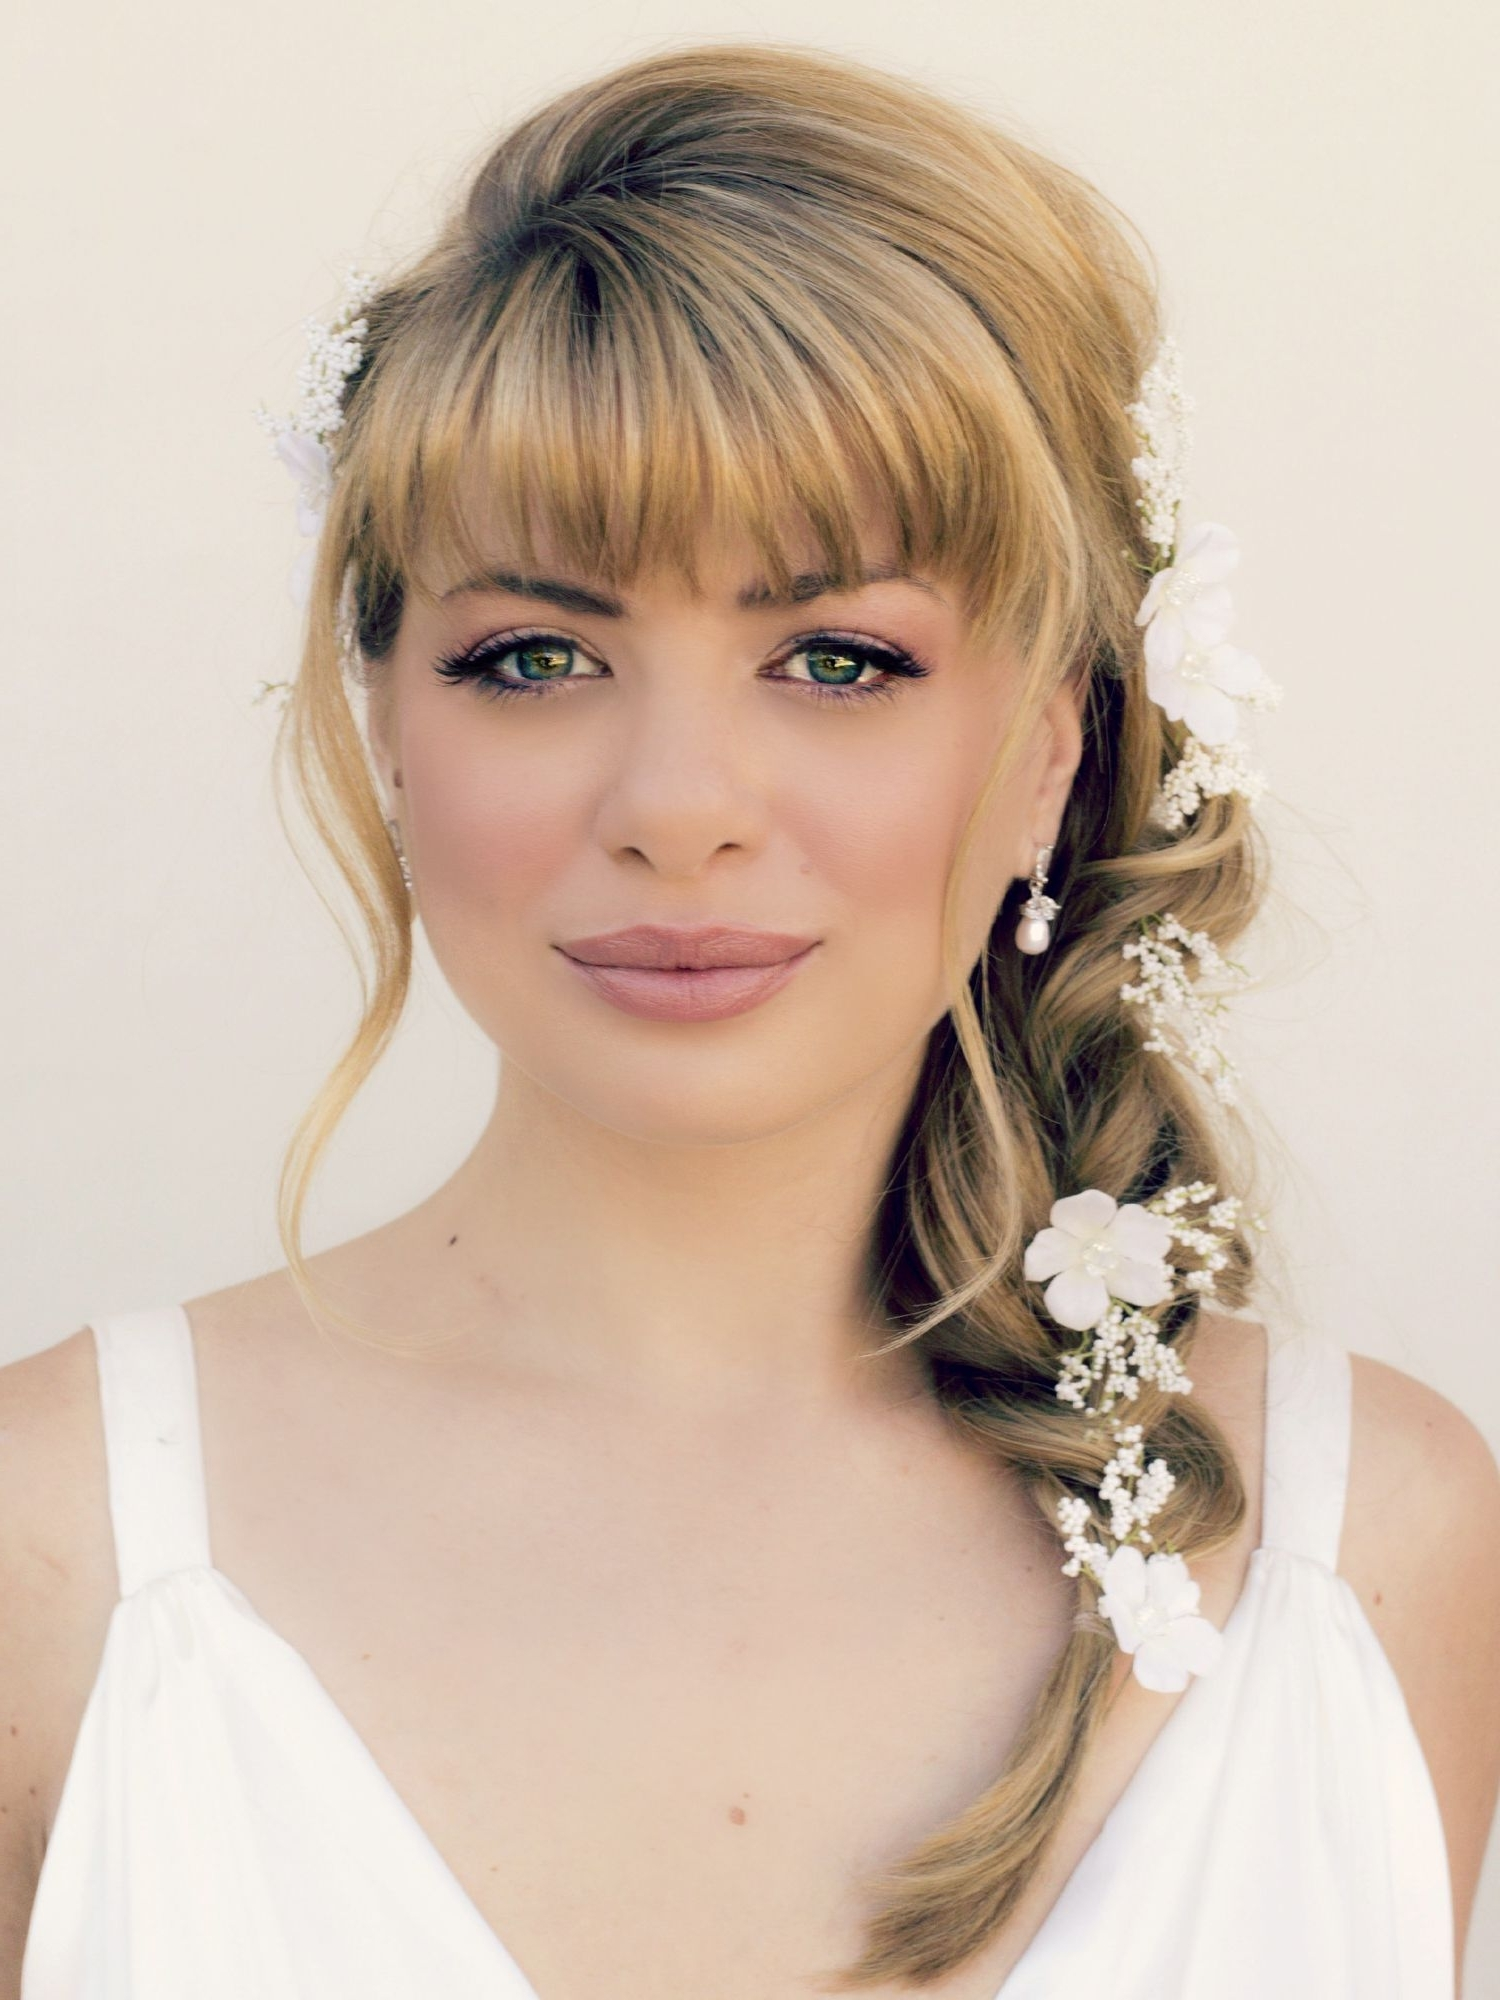 20 Hairstyles With Bangs To Inspire You For Fall (View 1 of 15)